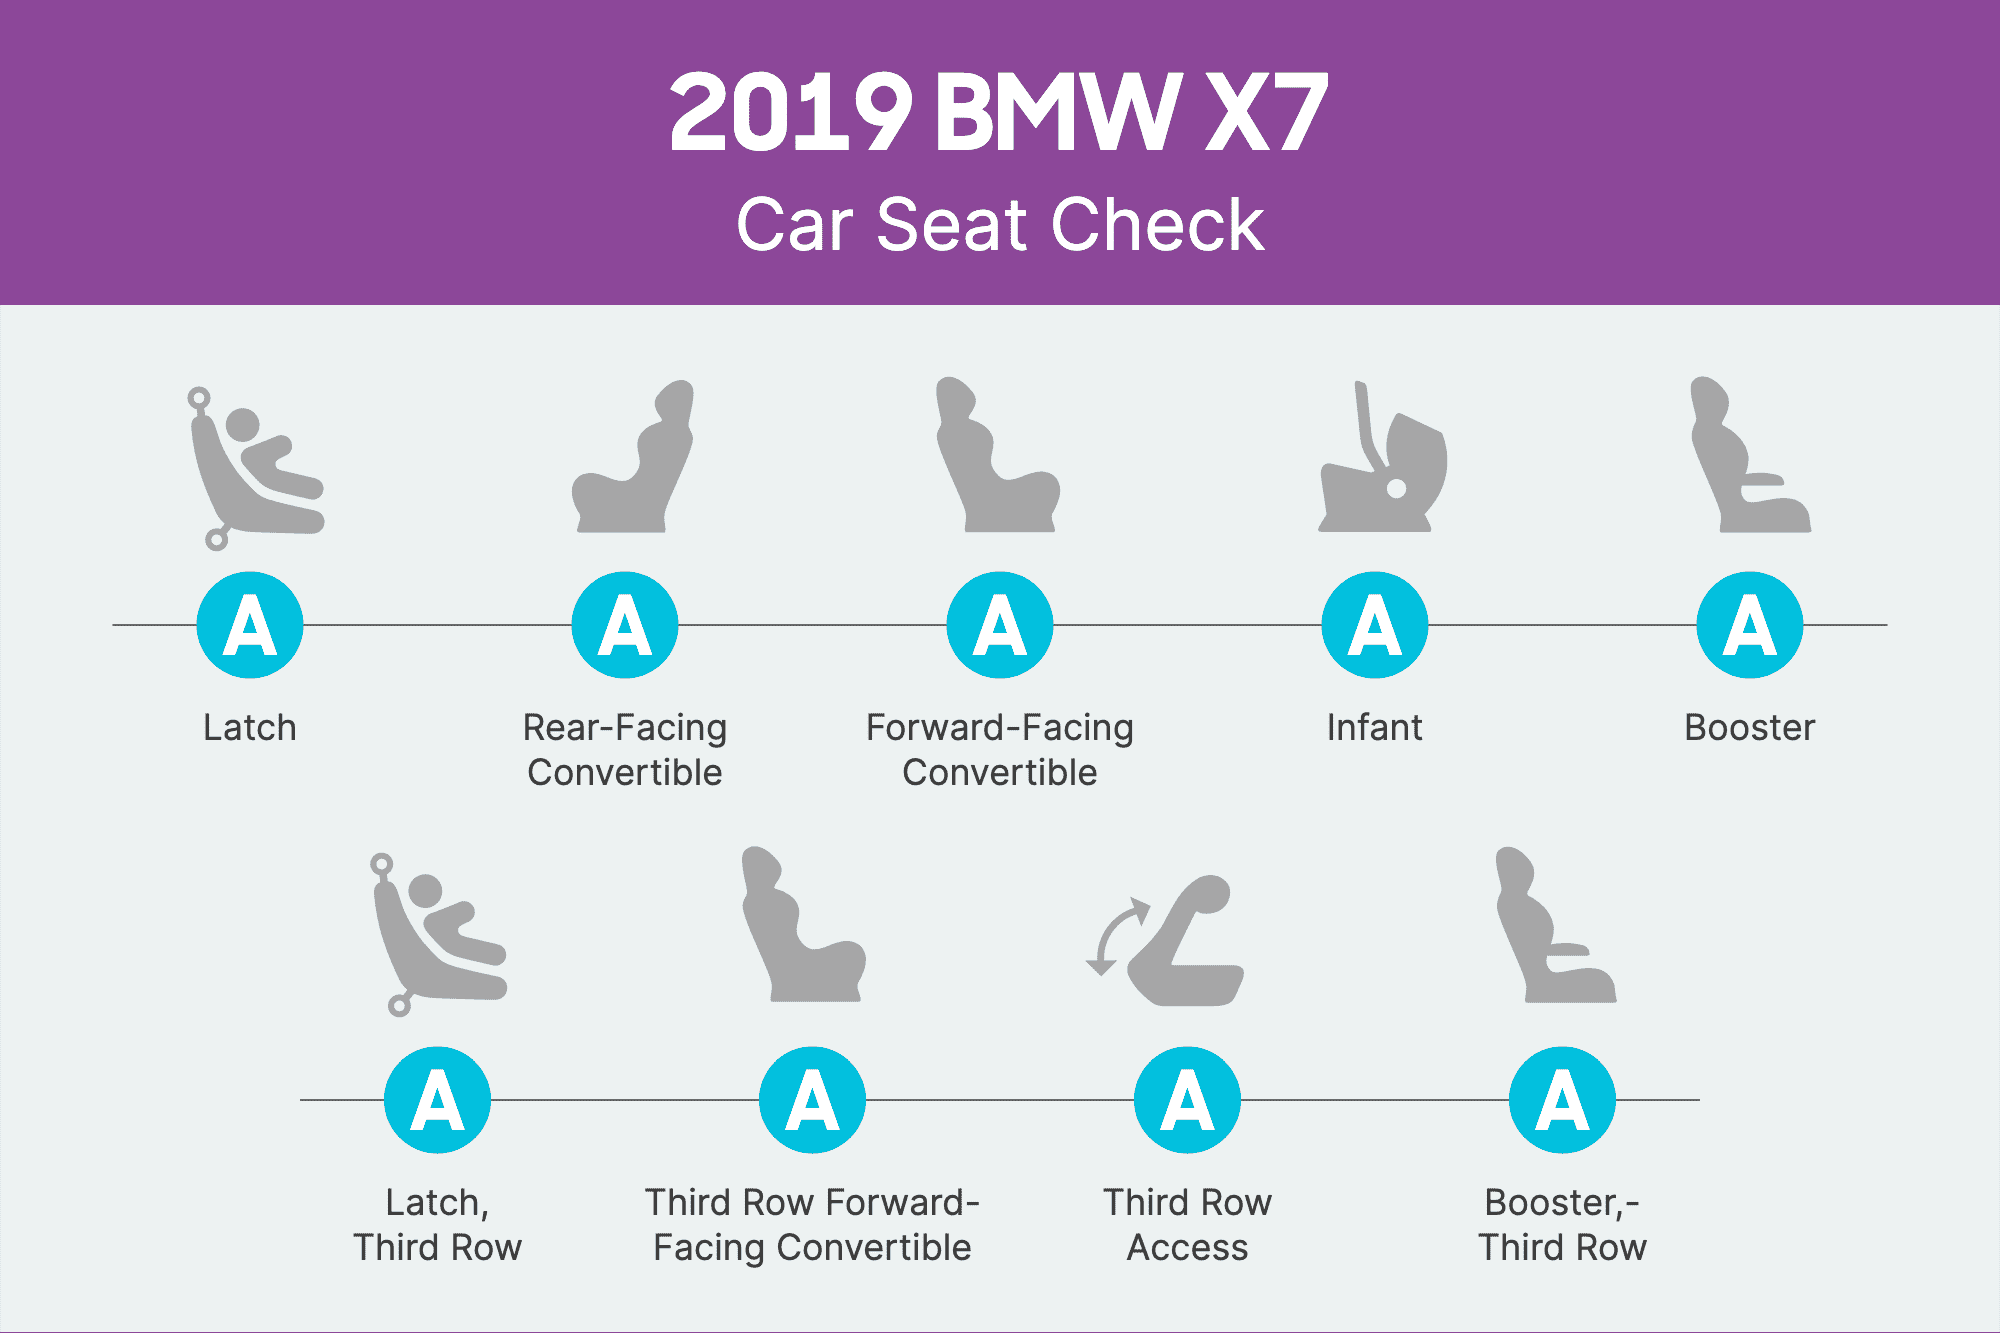 How Do Car Seats Fit in a 2019 BMW X7?